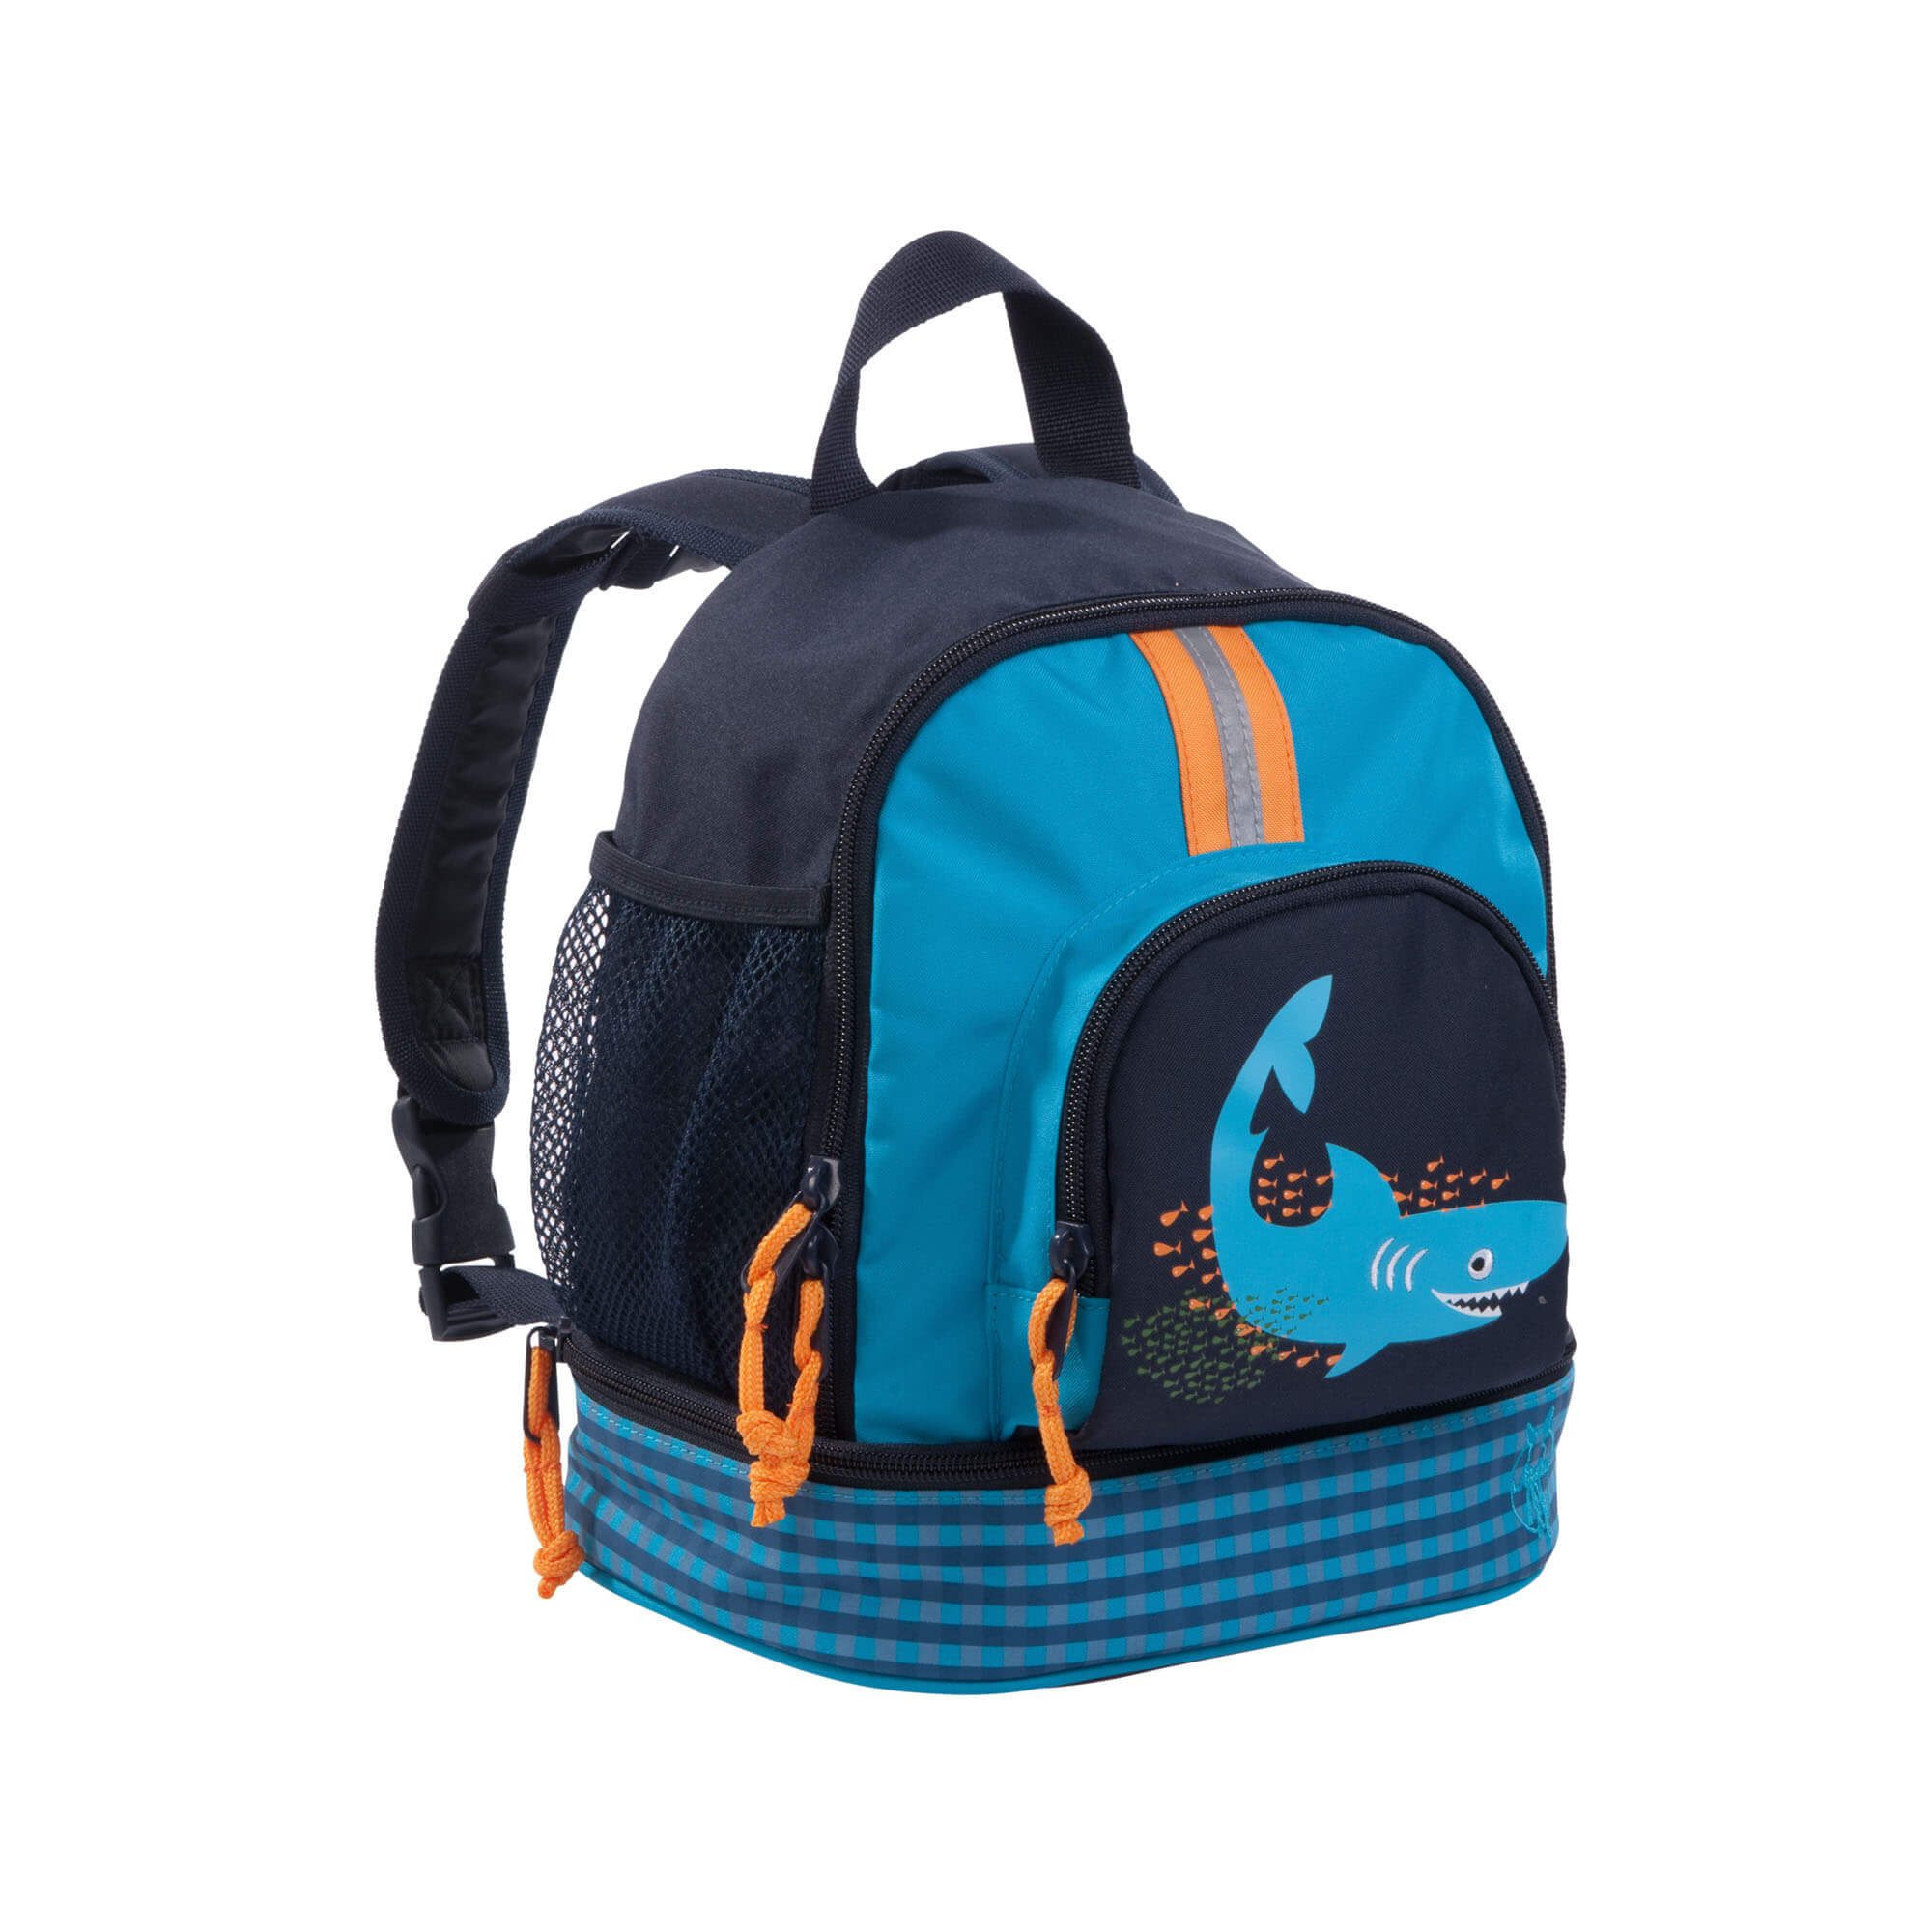 Lassig 4kids Mini Backpack 2 Shark Ocean